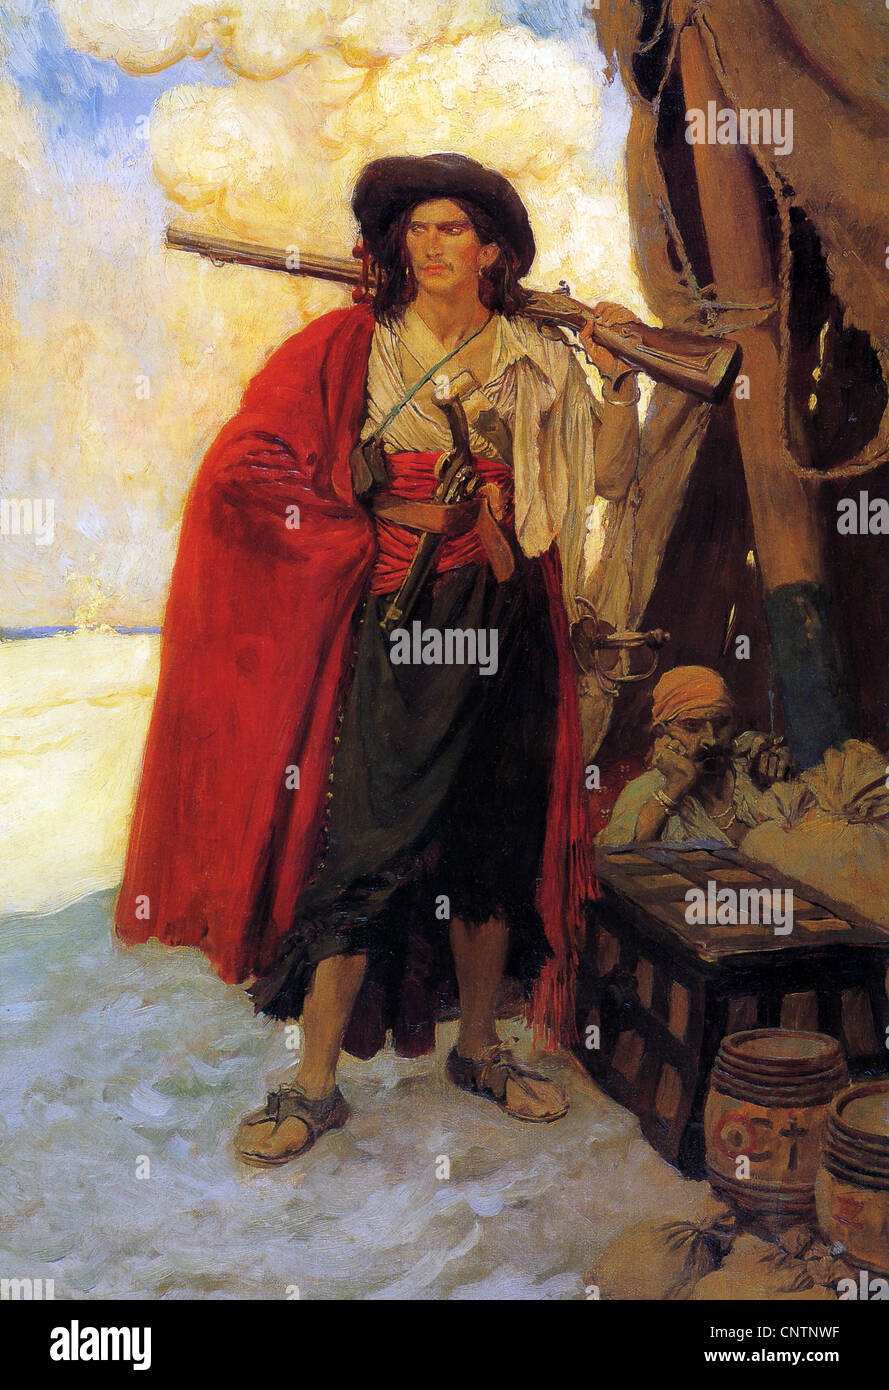 BUCANEERS as painted by American illustrator Howard Pyle (1853-1911) - Stock Image